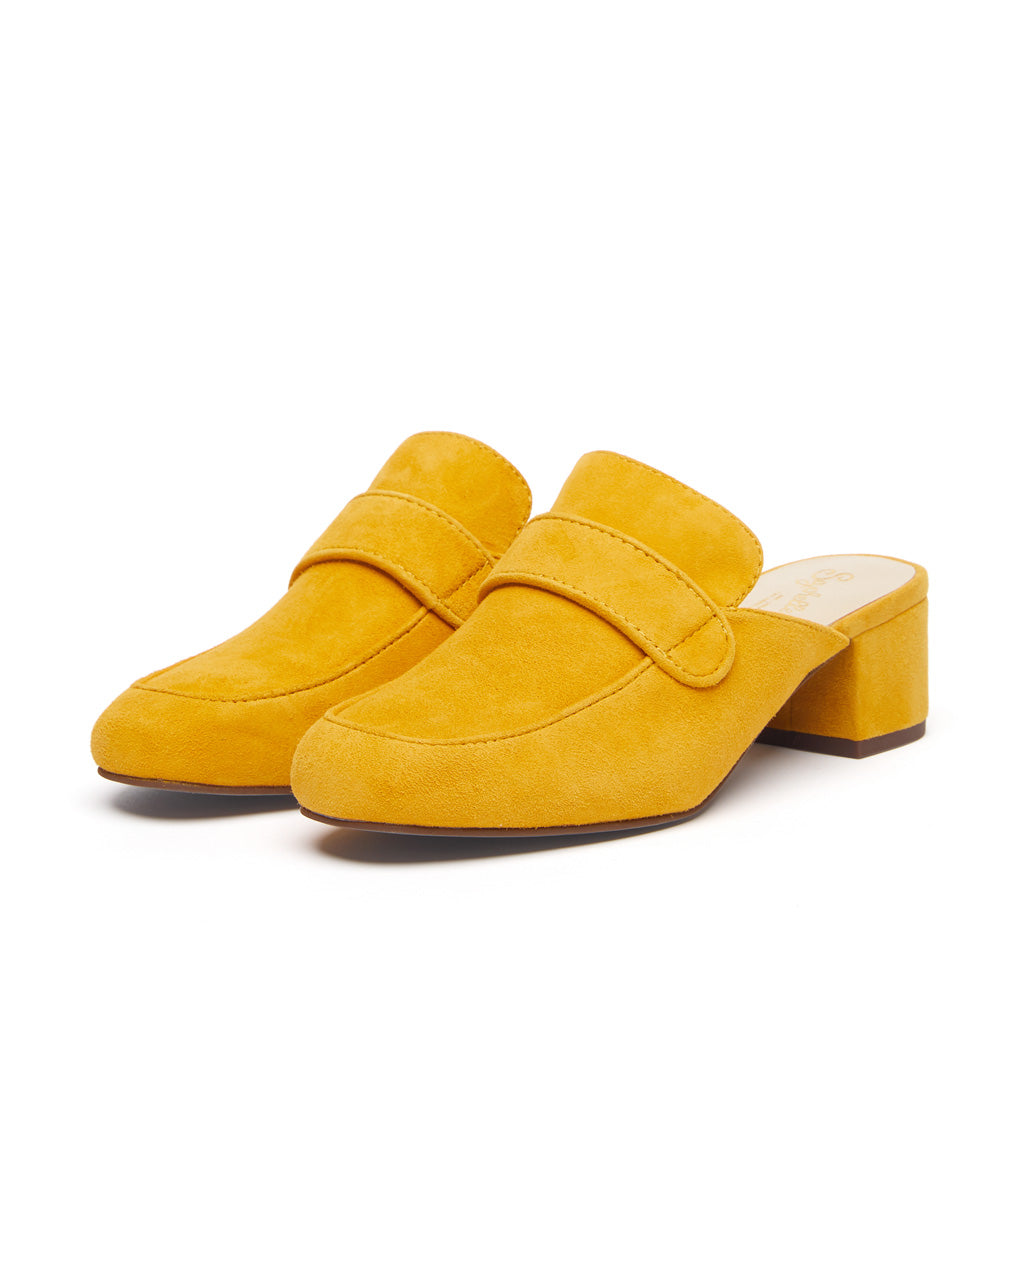 Yellow suede mule heels with a 2 inch heel.